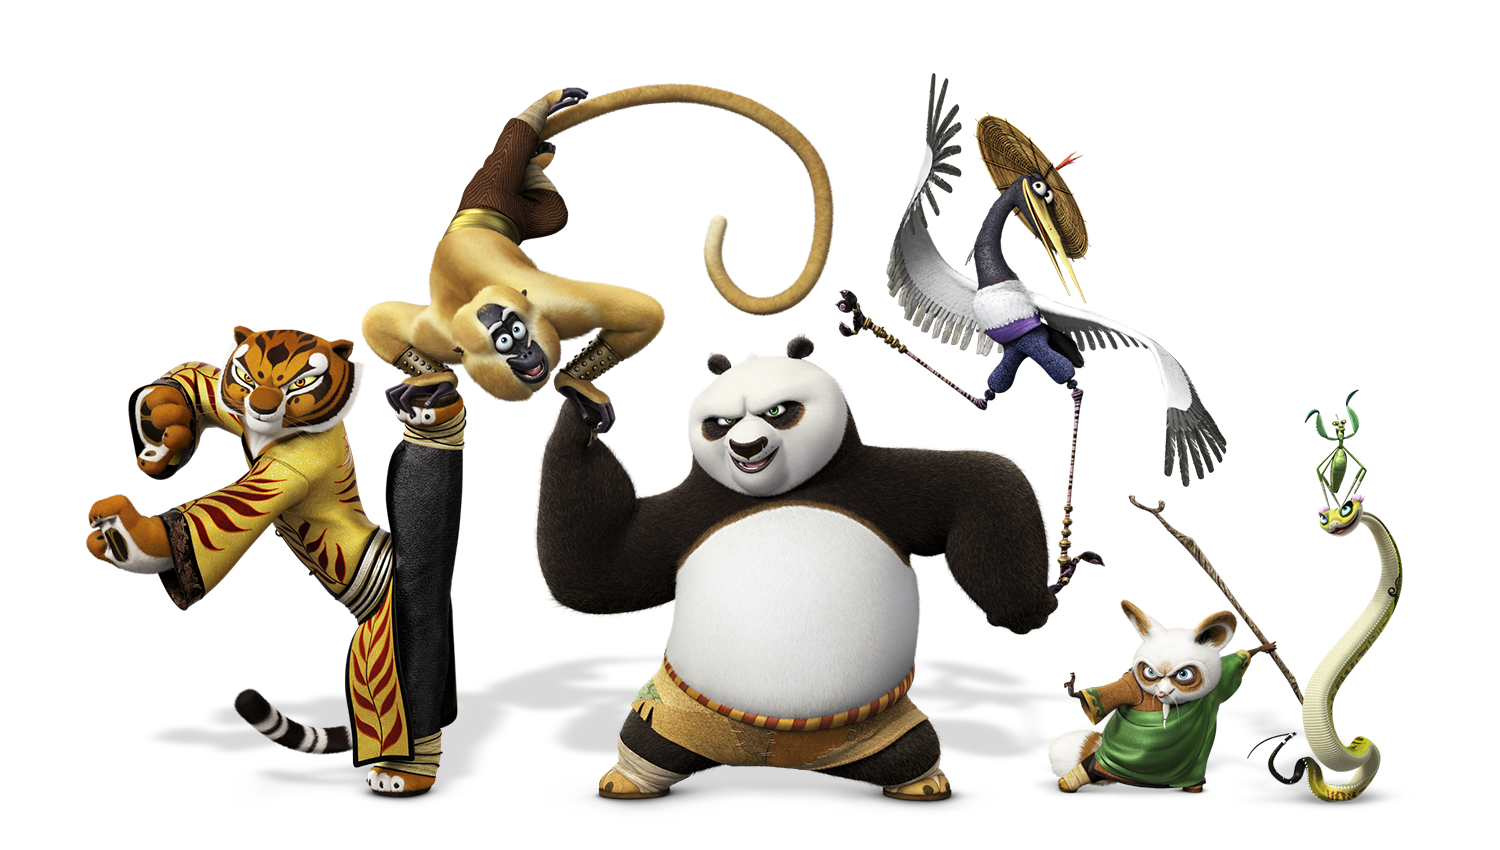 Kung fu panda 3 png. Image po and friends